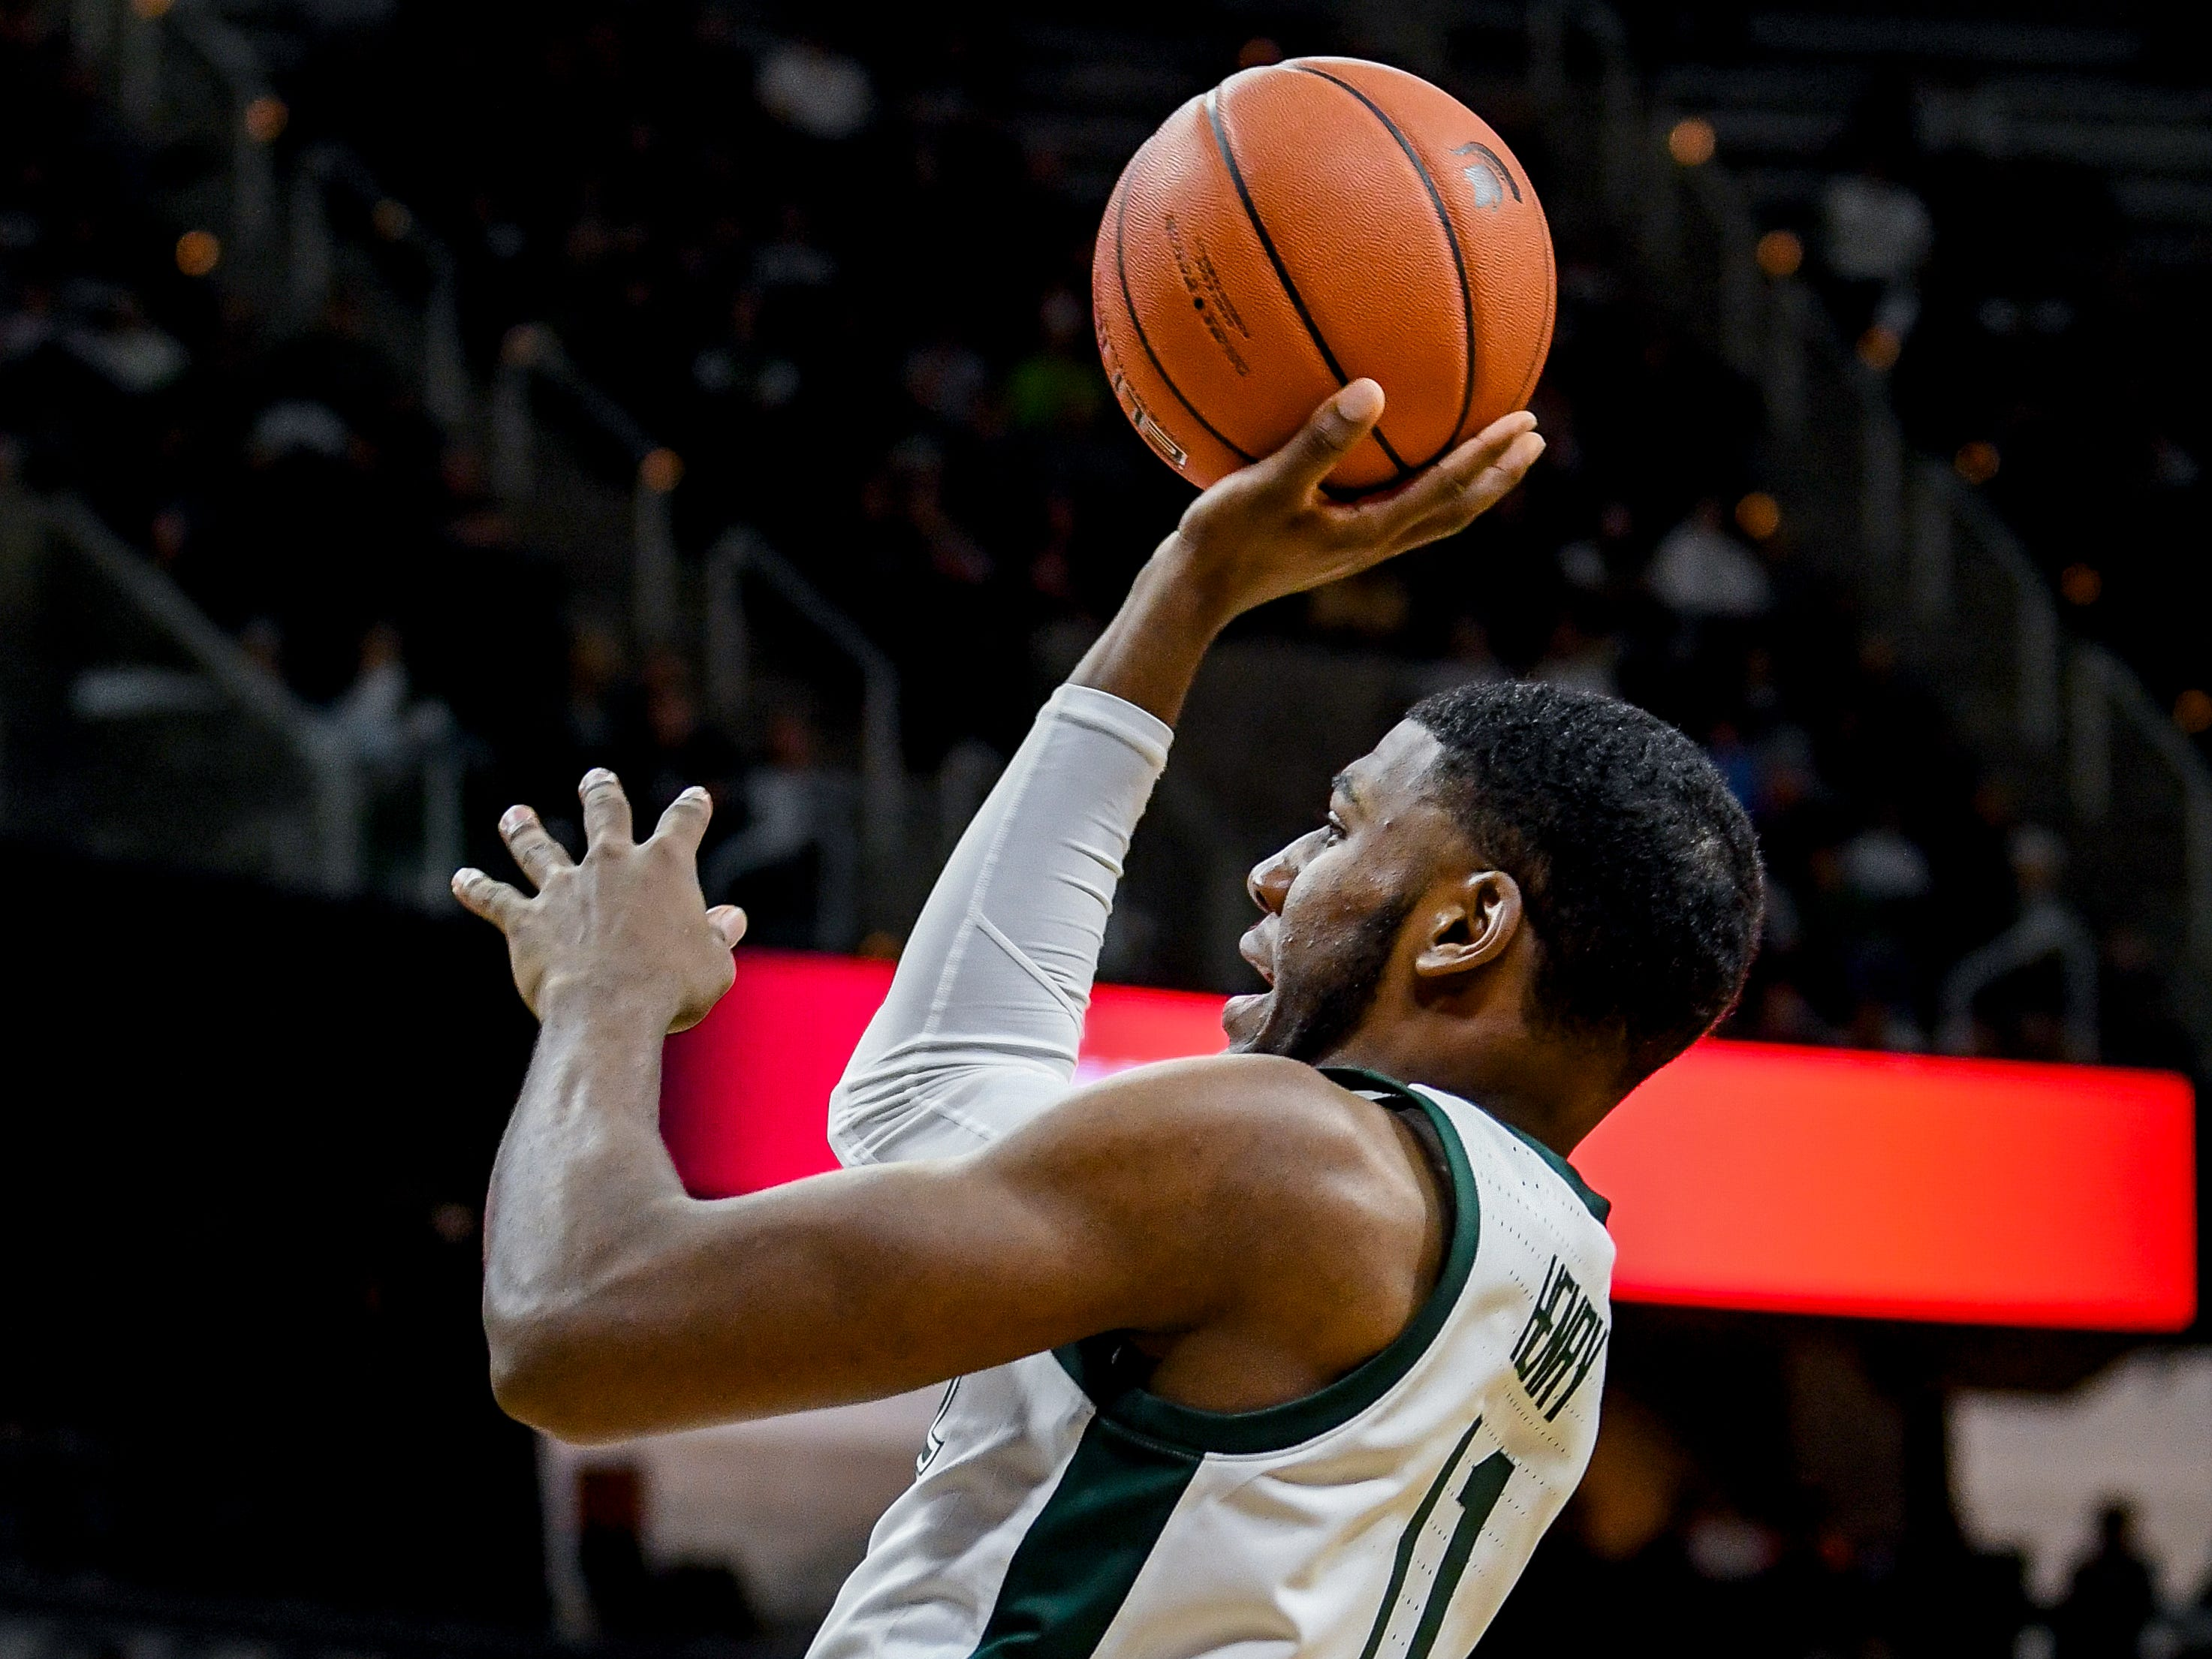 Michigan State's Aaron Henry makes a basket and draws an Iowa foul during the second half on Monday, Dec. 3, 2018, at the Breslin Center in East Lansing. Michigan State beat Iowa 90-68.